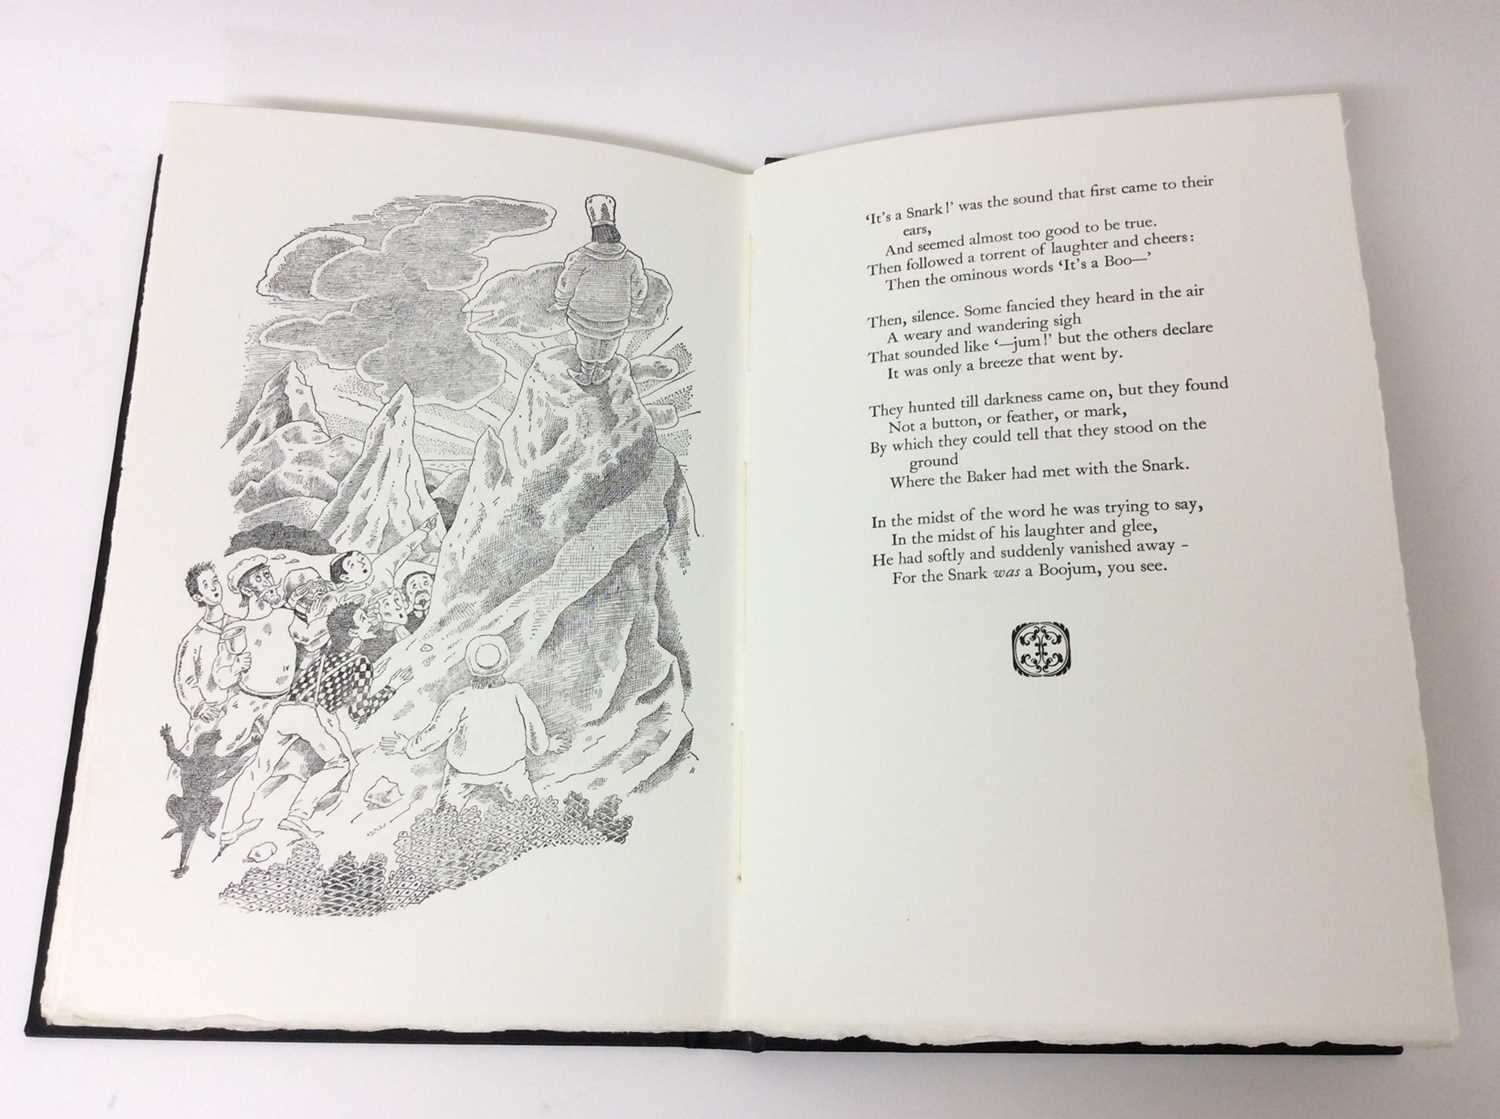 Lewis Carroll - The Hunting of the Snark, Whittington Press 1975, 404/750 - Image 9 of 10